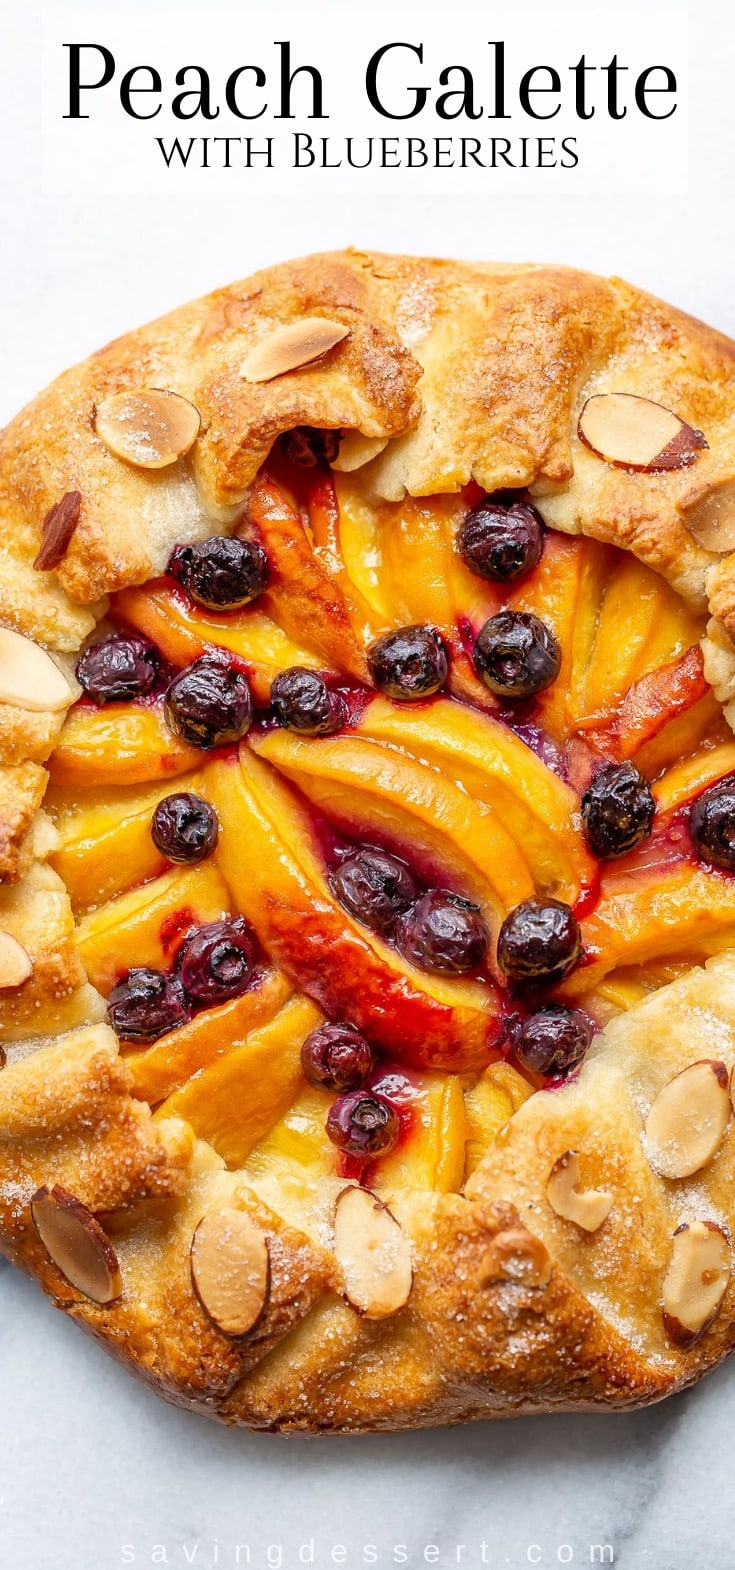 A close up shot of a peach galette with blueberries and sliced almonds